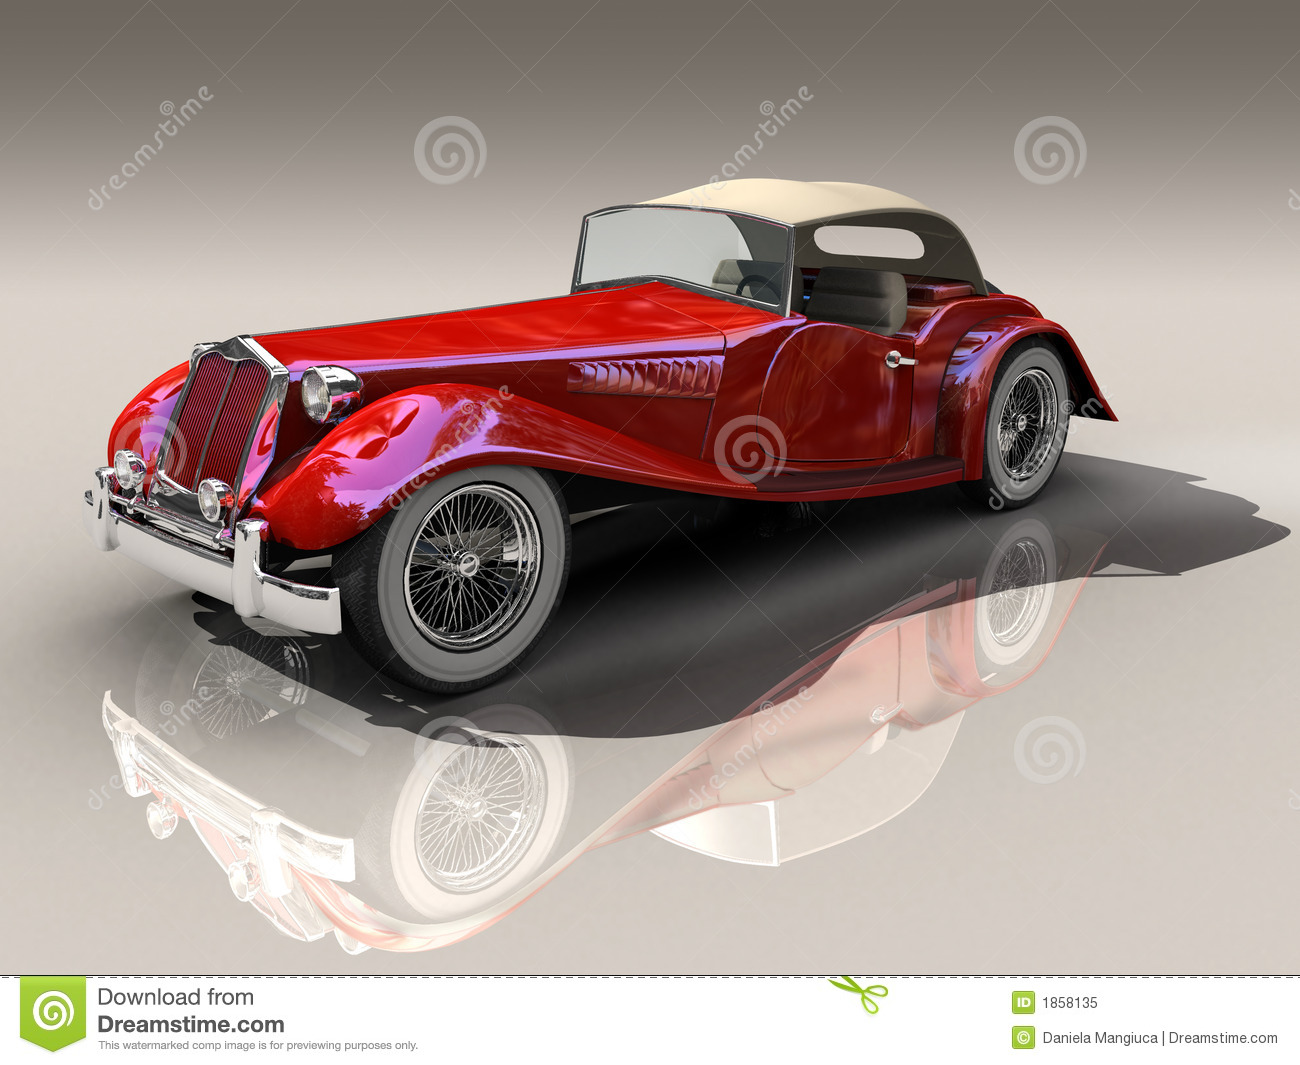 Vintage red car 3D model stock image. Image of high, speed - 1858135